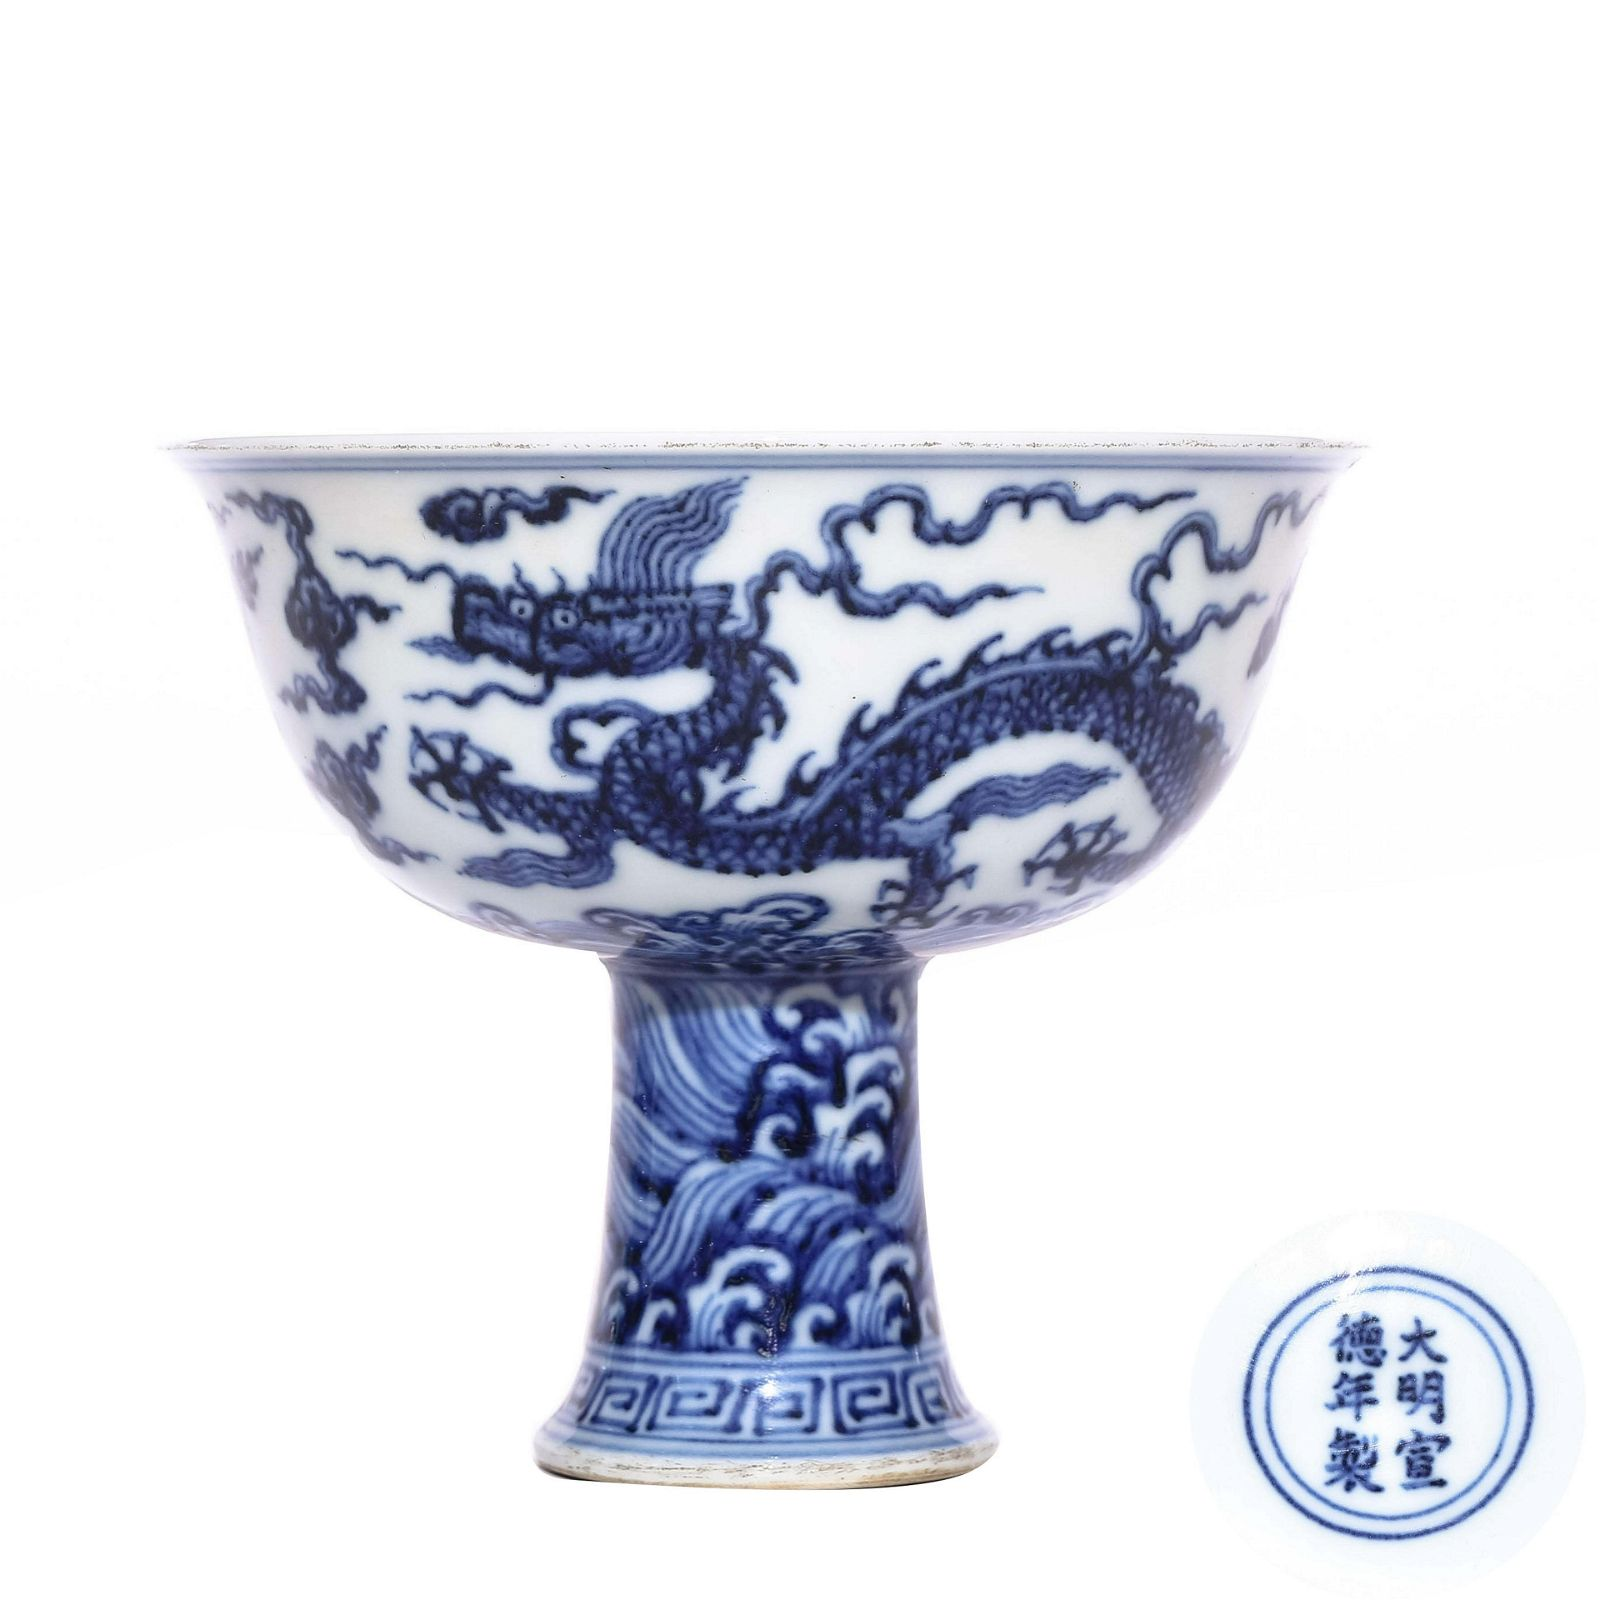 A CHINESE BLUE AND WHITE PORCELAIN STANDING CUP